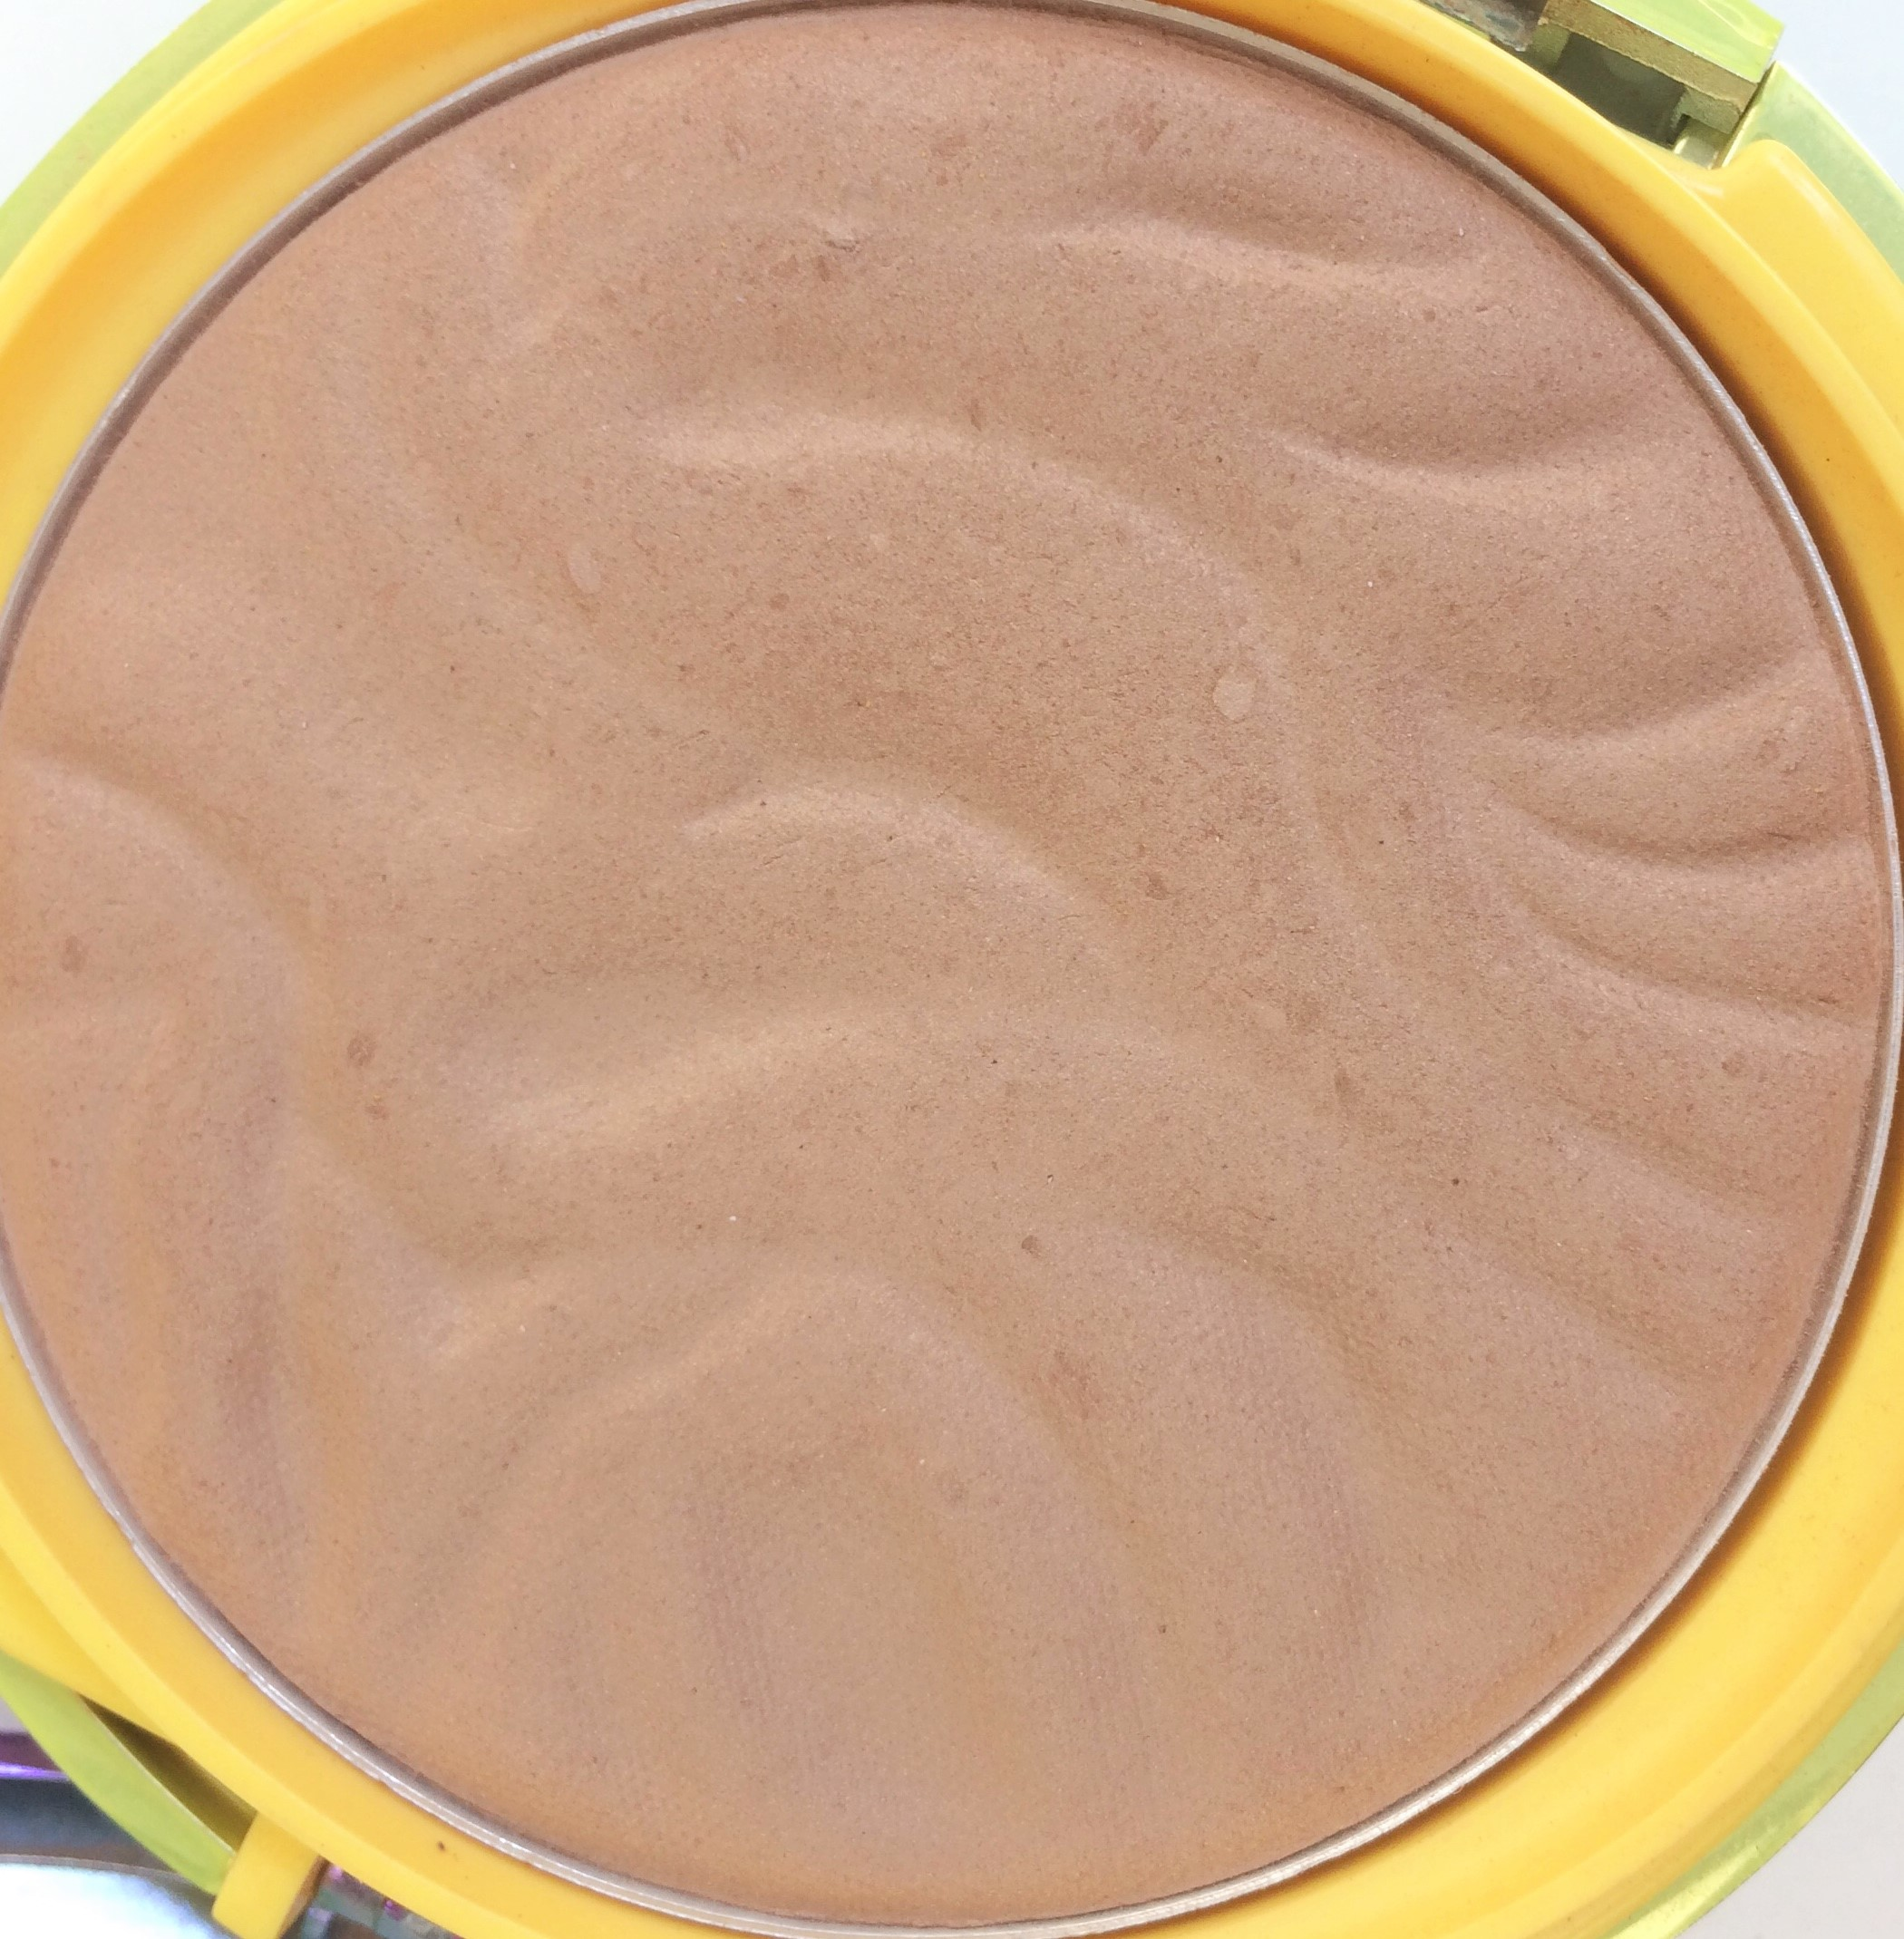 Physician's Formula Butter Bronzer Review (2)